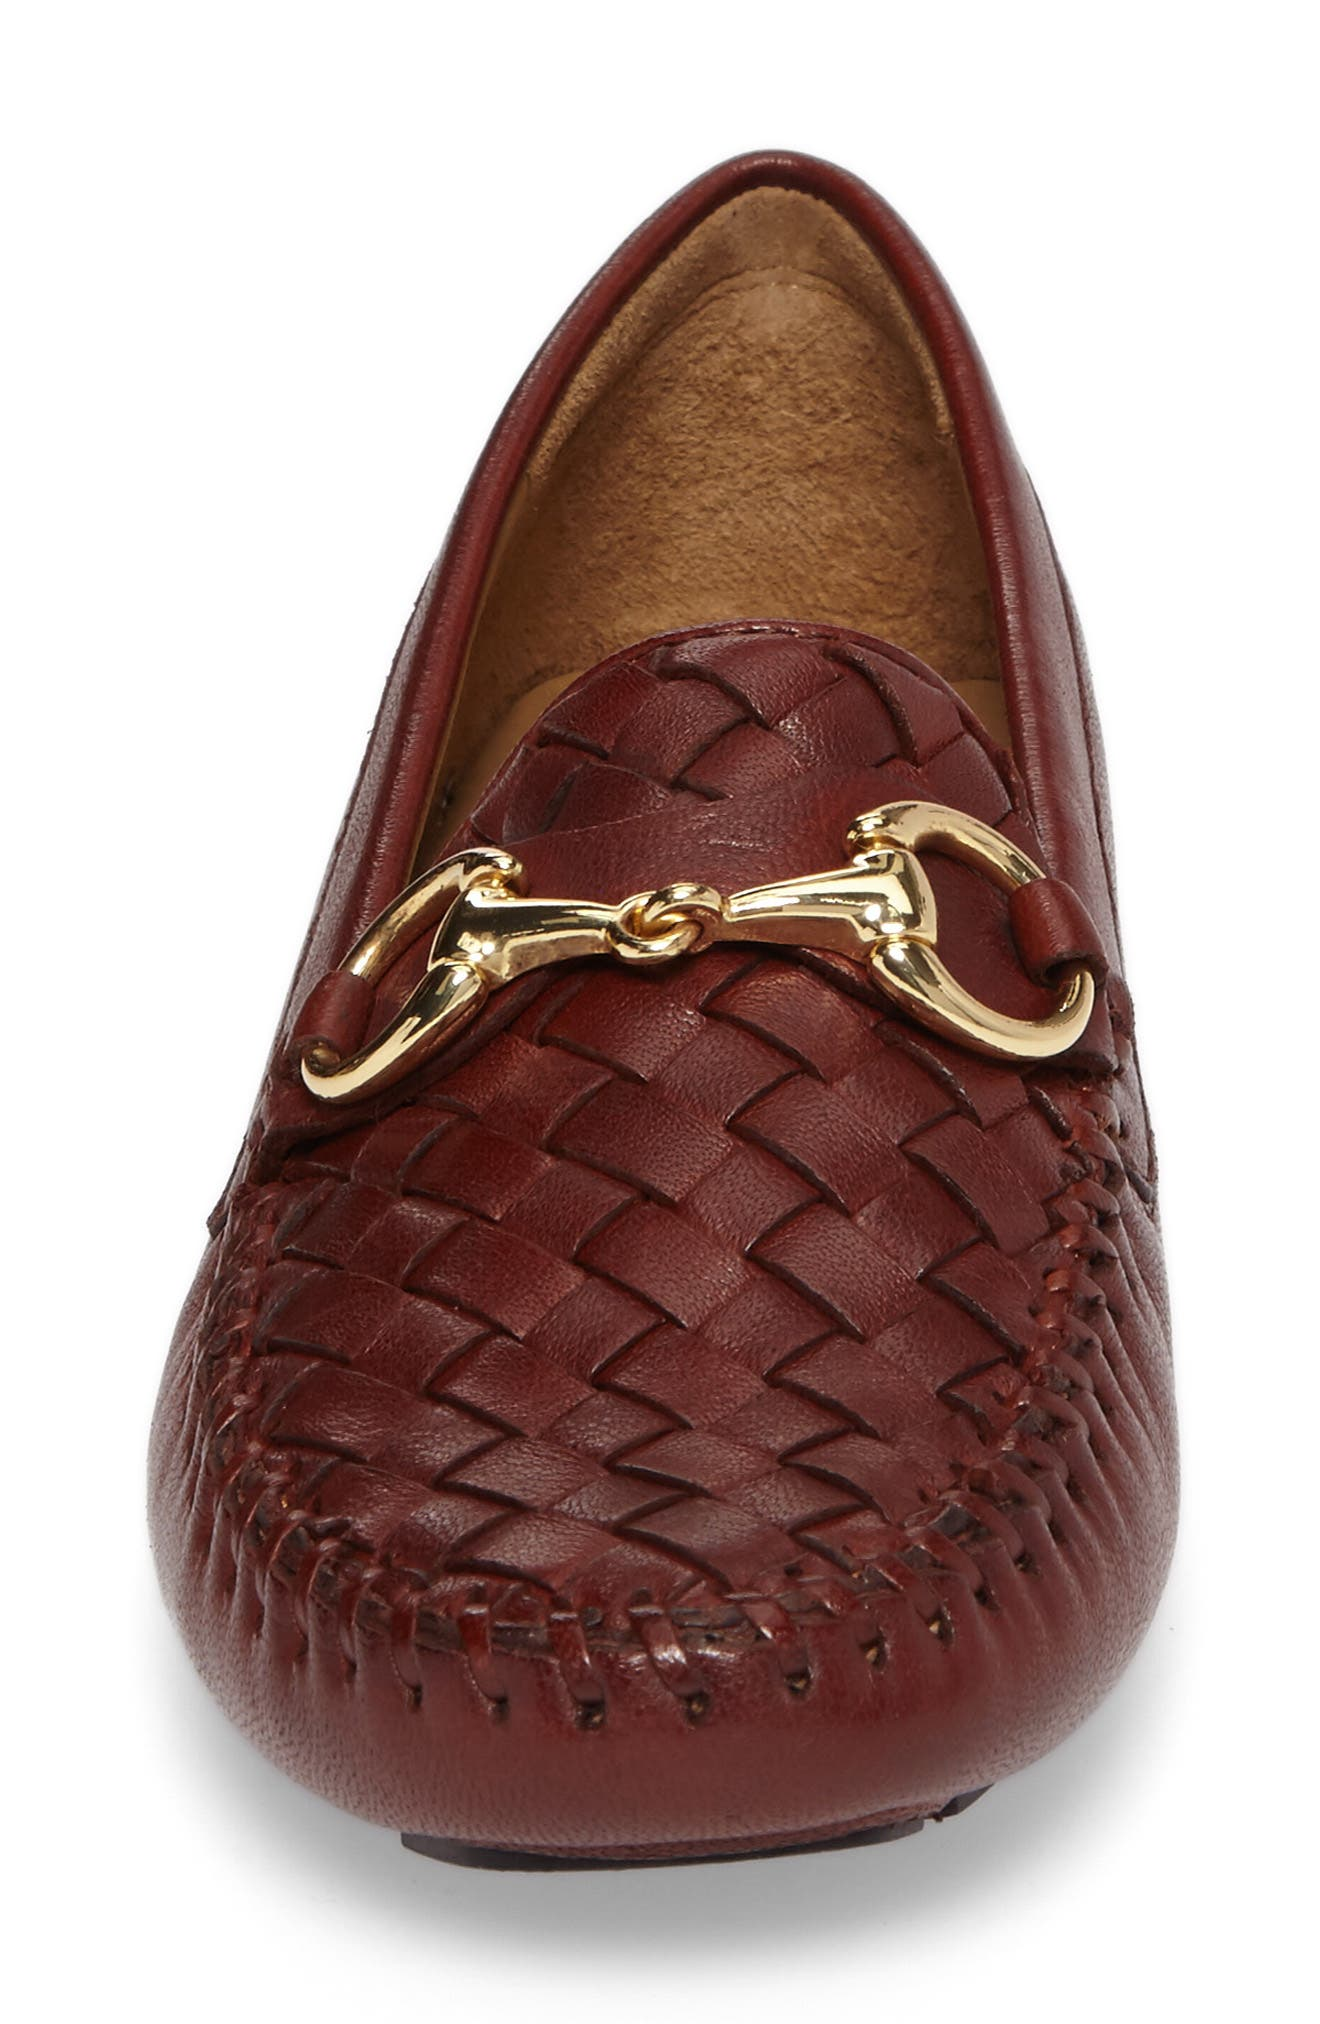 'Perlata' Loafer,                             Alternate thumbnail 4, color,                             VINTAGE LUGGAGE LEATHER